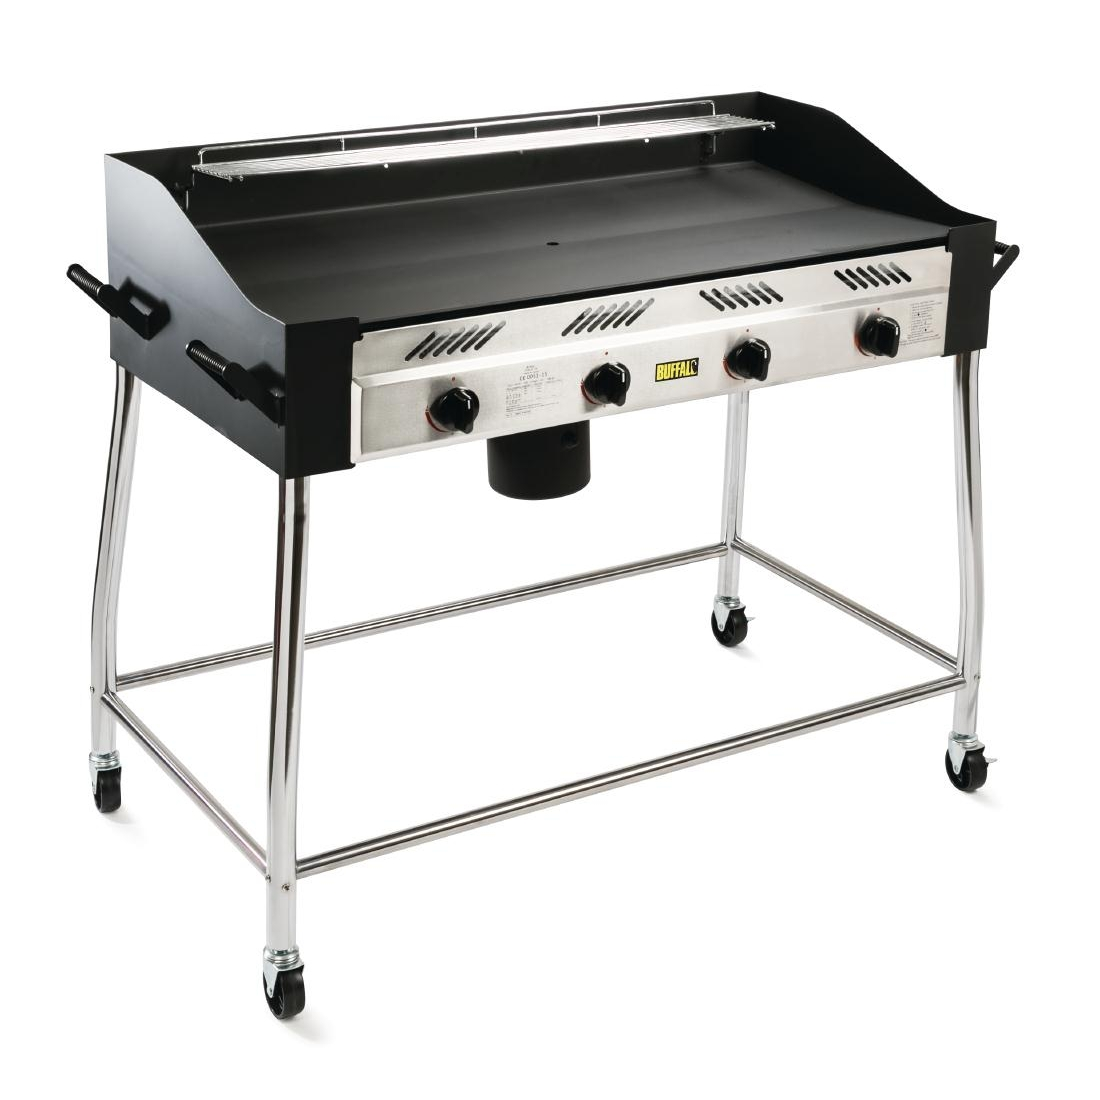 Griddle Barbecue - Propane